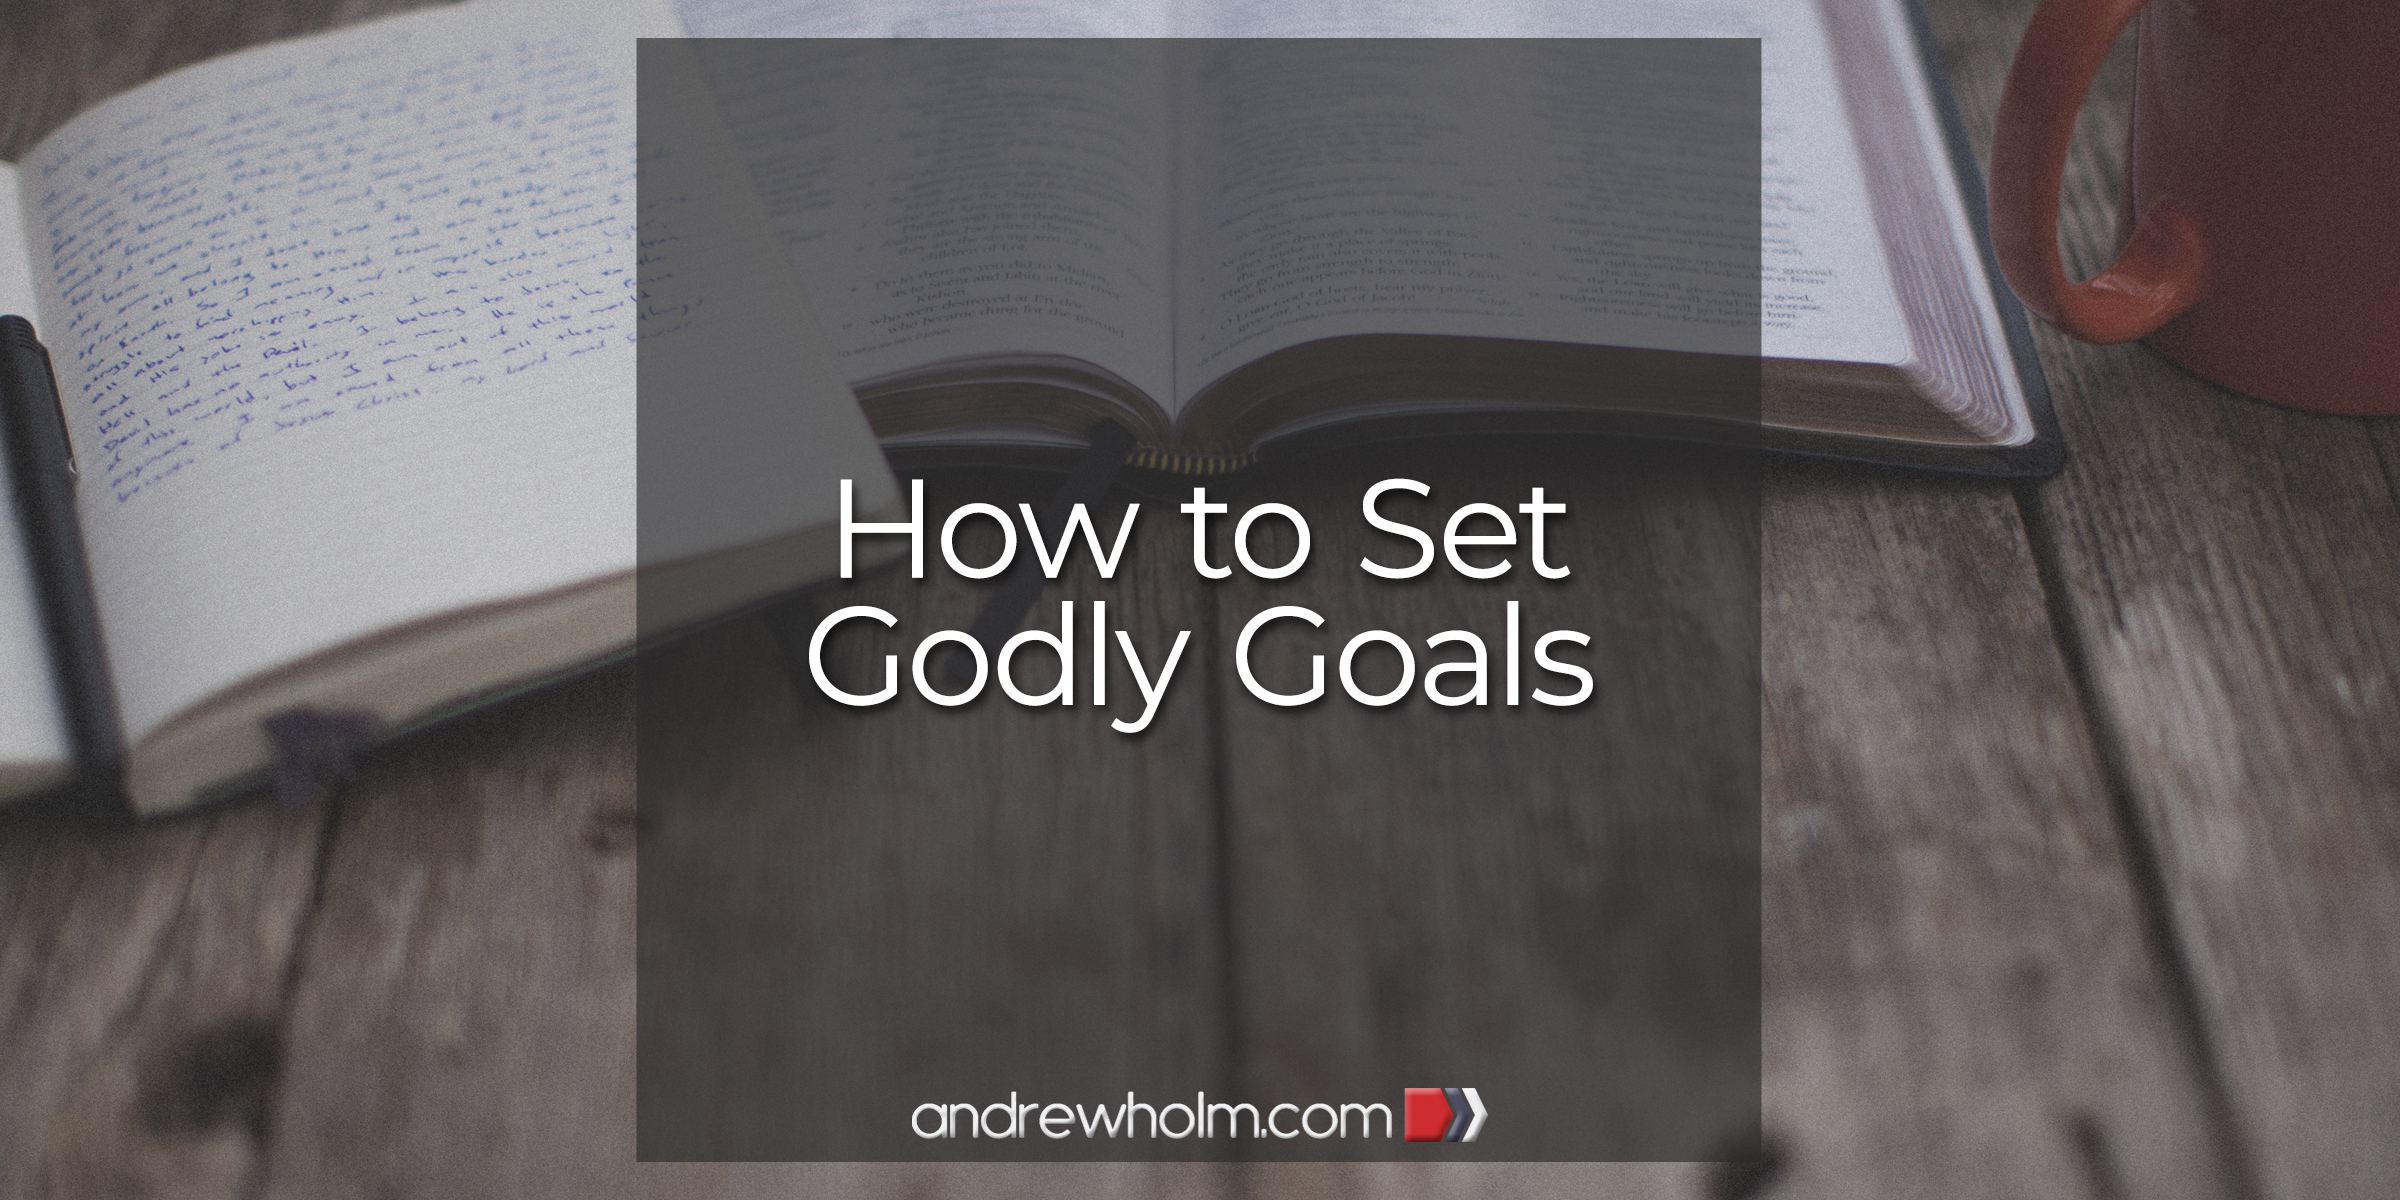 How to Set Godly Goals